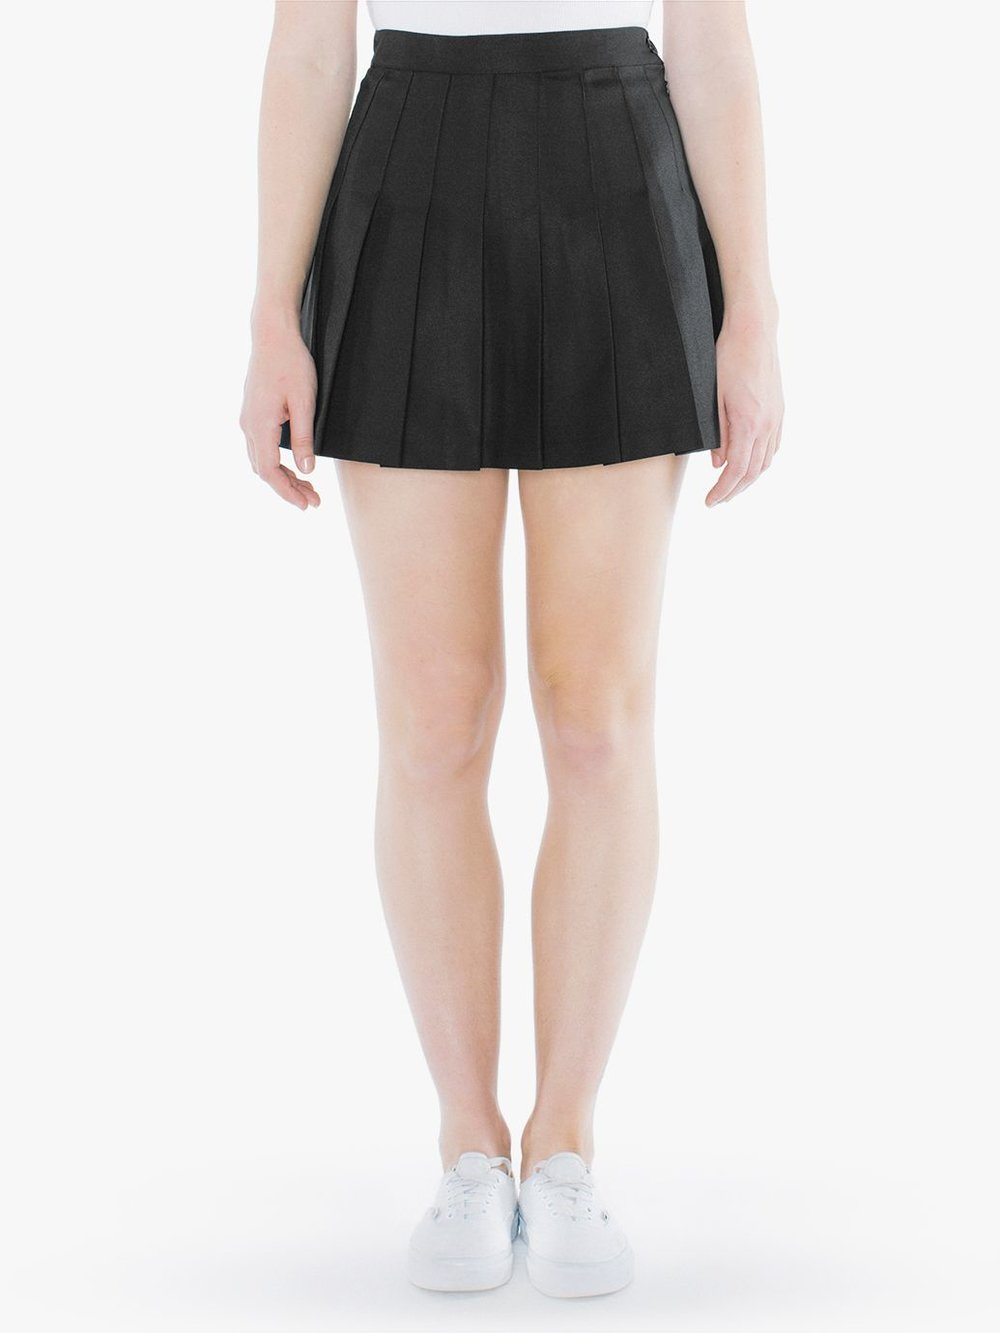 The Gabardine Tennis Skirt